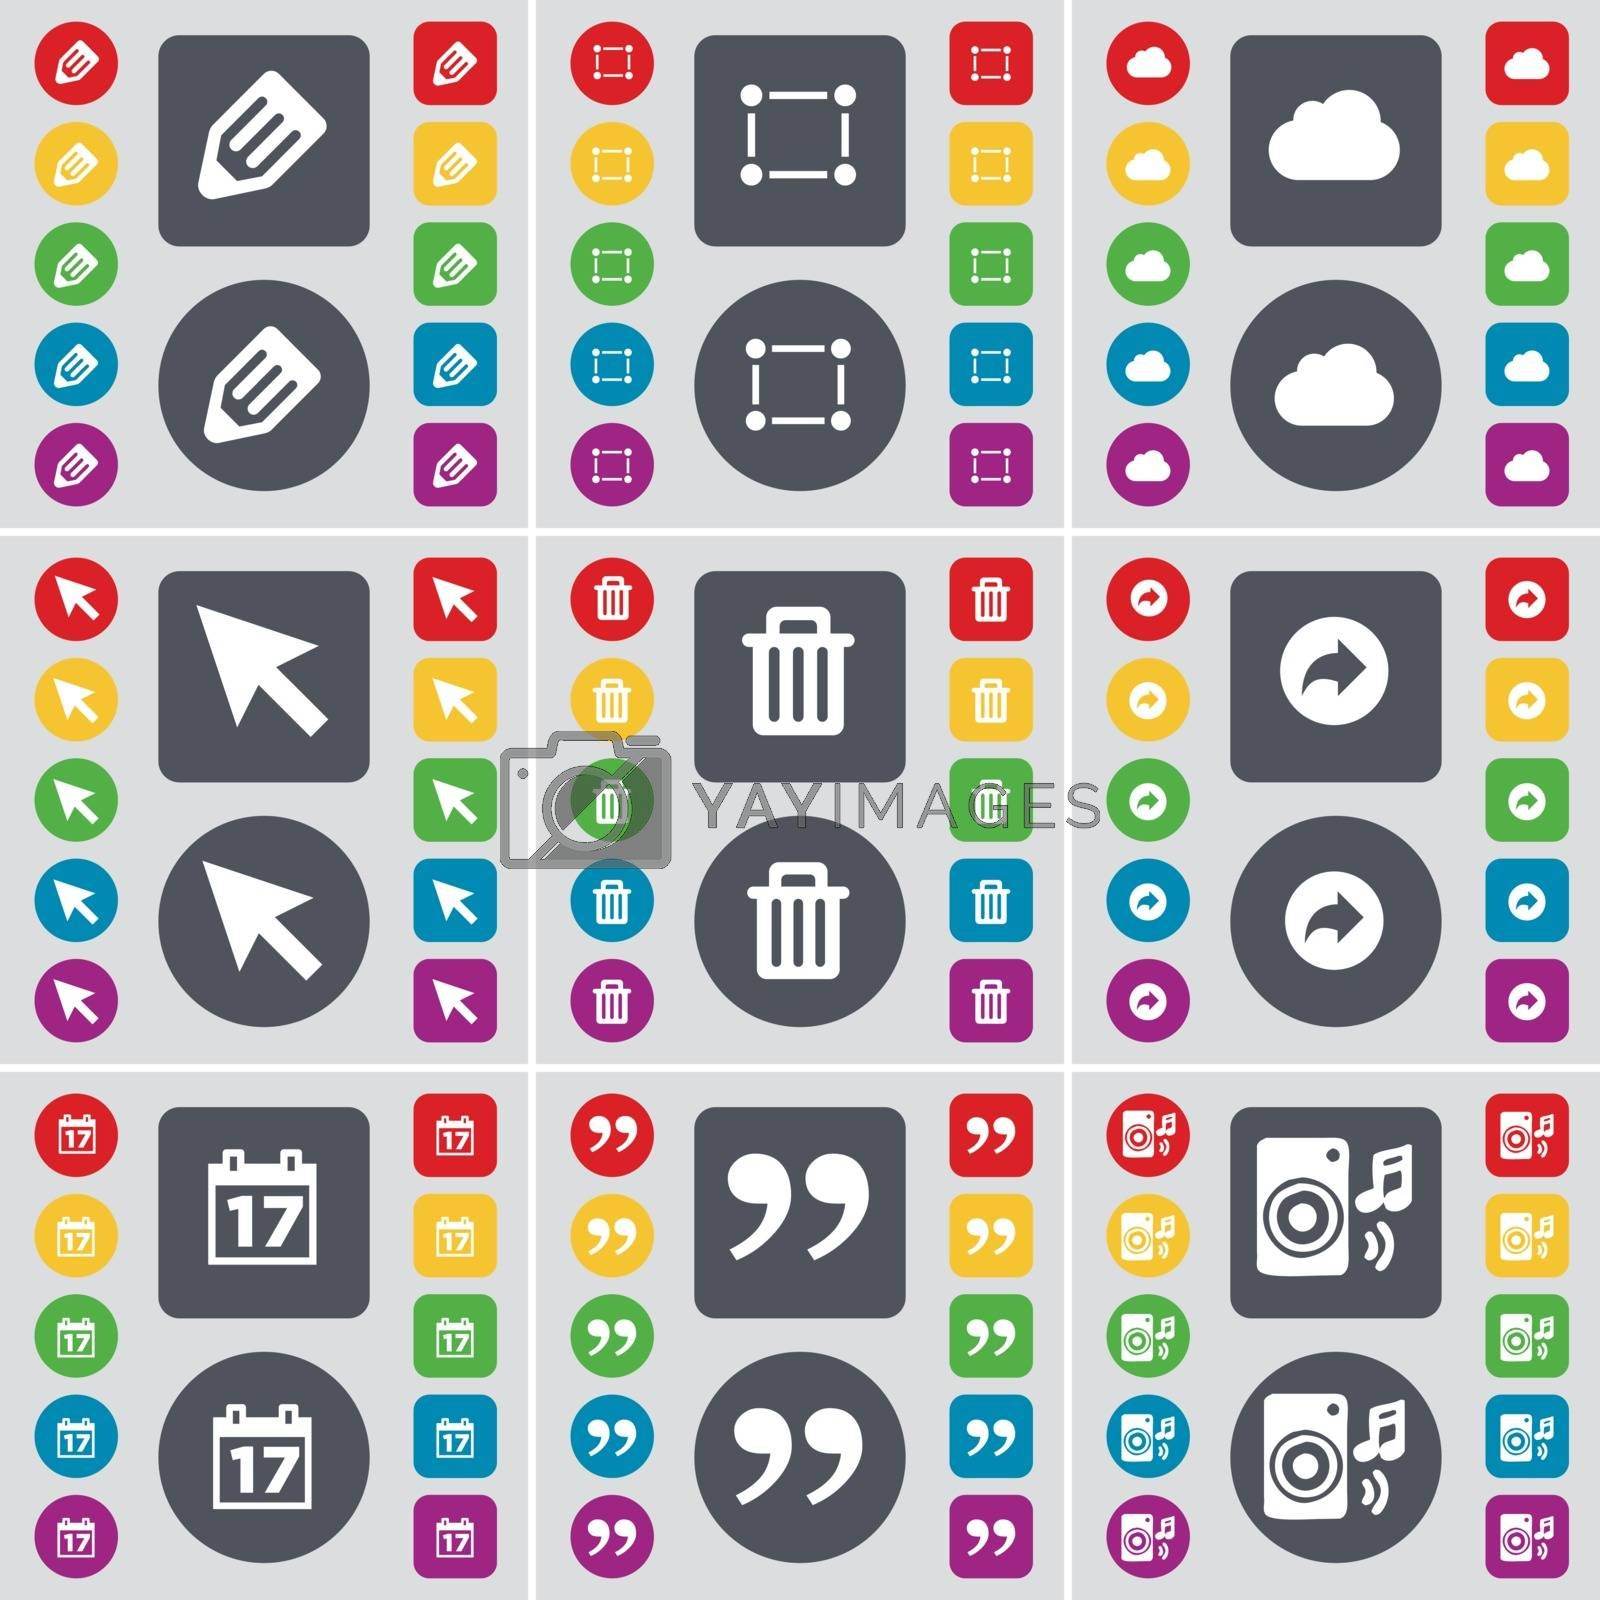 Royalty free image of Pencil, Frame, Cloud, Cursor, Trash can, Back, Calendar, Quotation mark, Speaker icon symbol. A large set of flat, colored buttons for your design. Vector by serhii_lohvyniuk